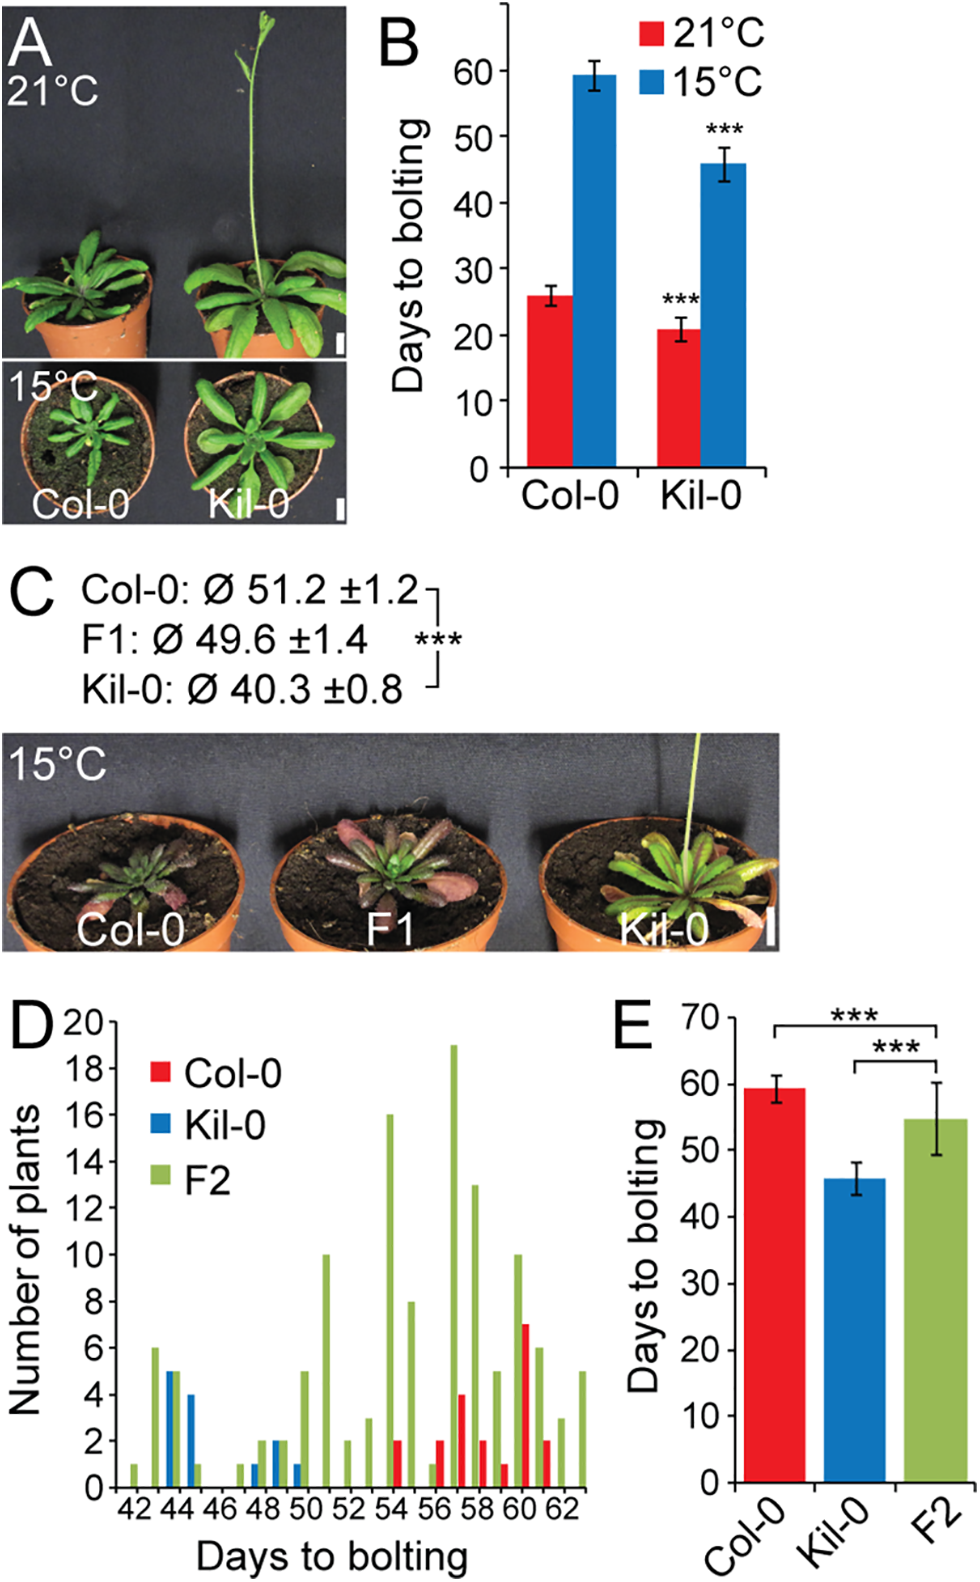 Early flowering is controlled by one major recessive locus in Kil-0.